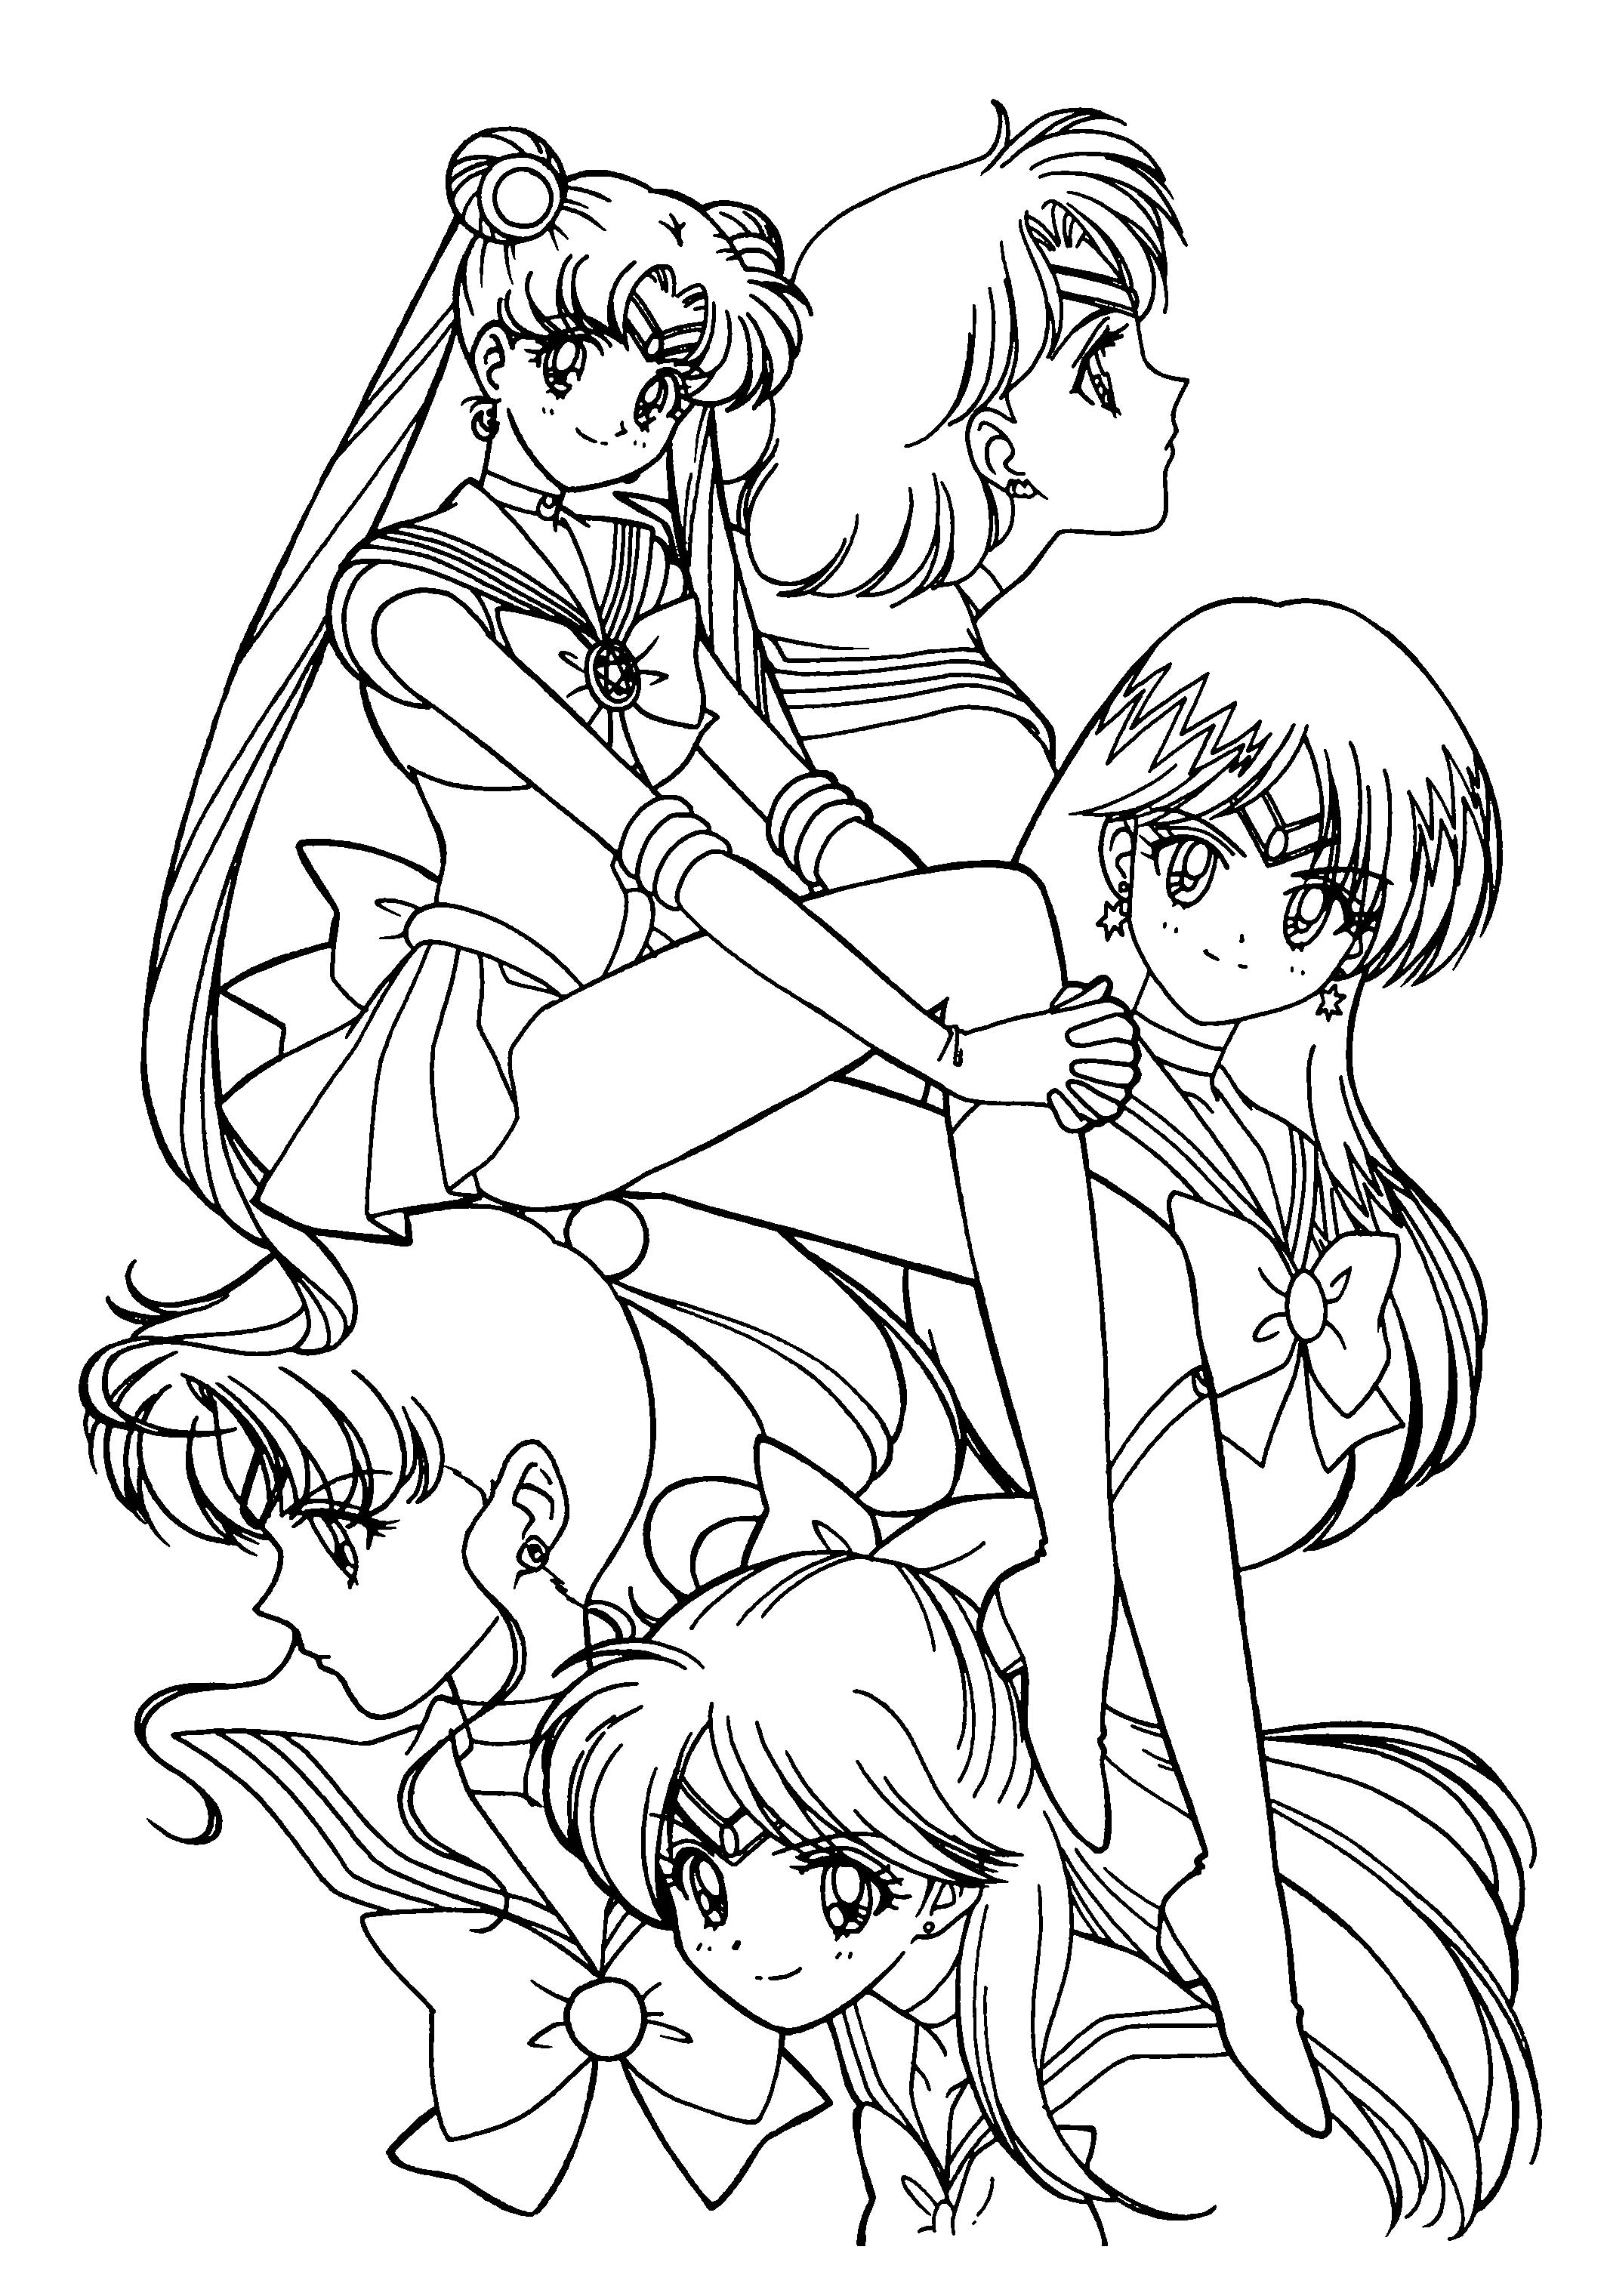 sailor moon coloring pages to download and print for free